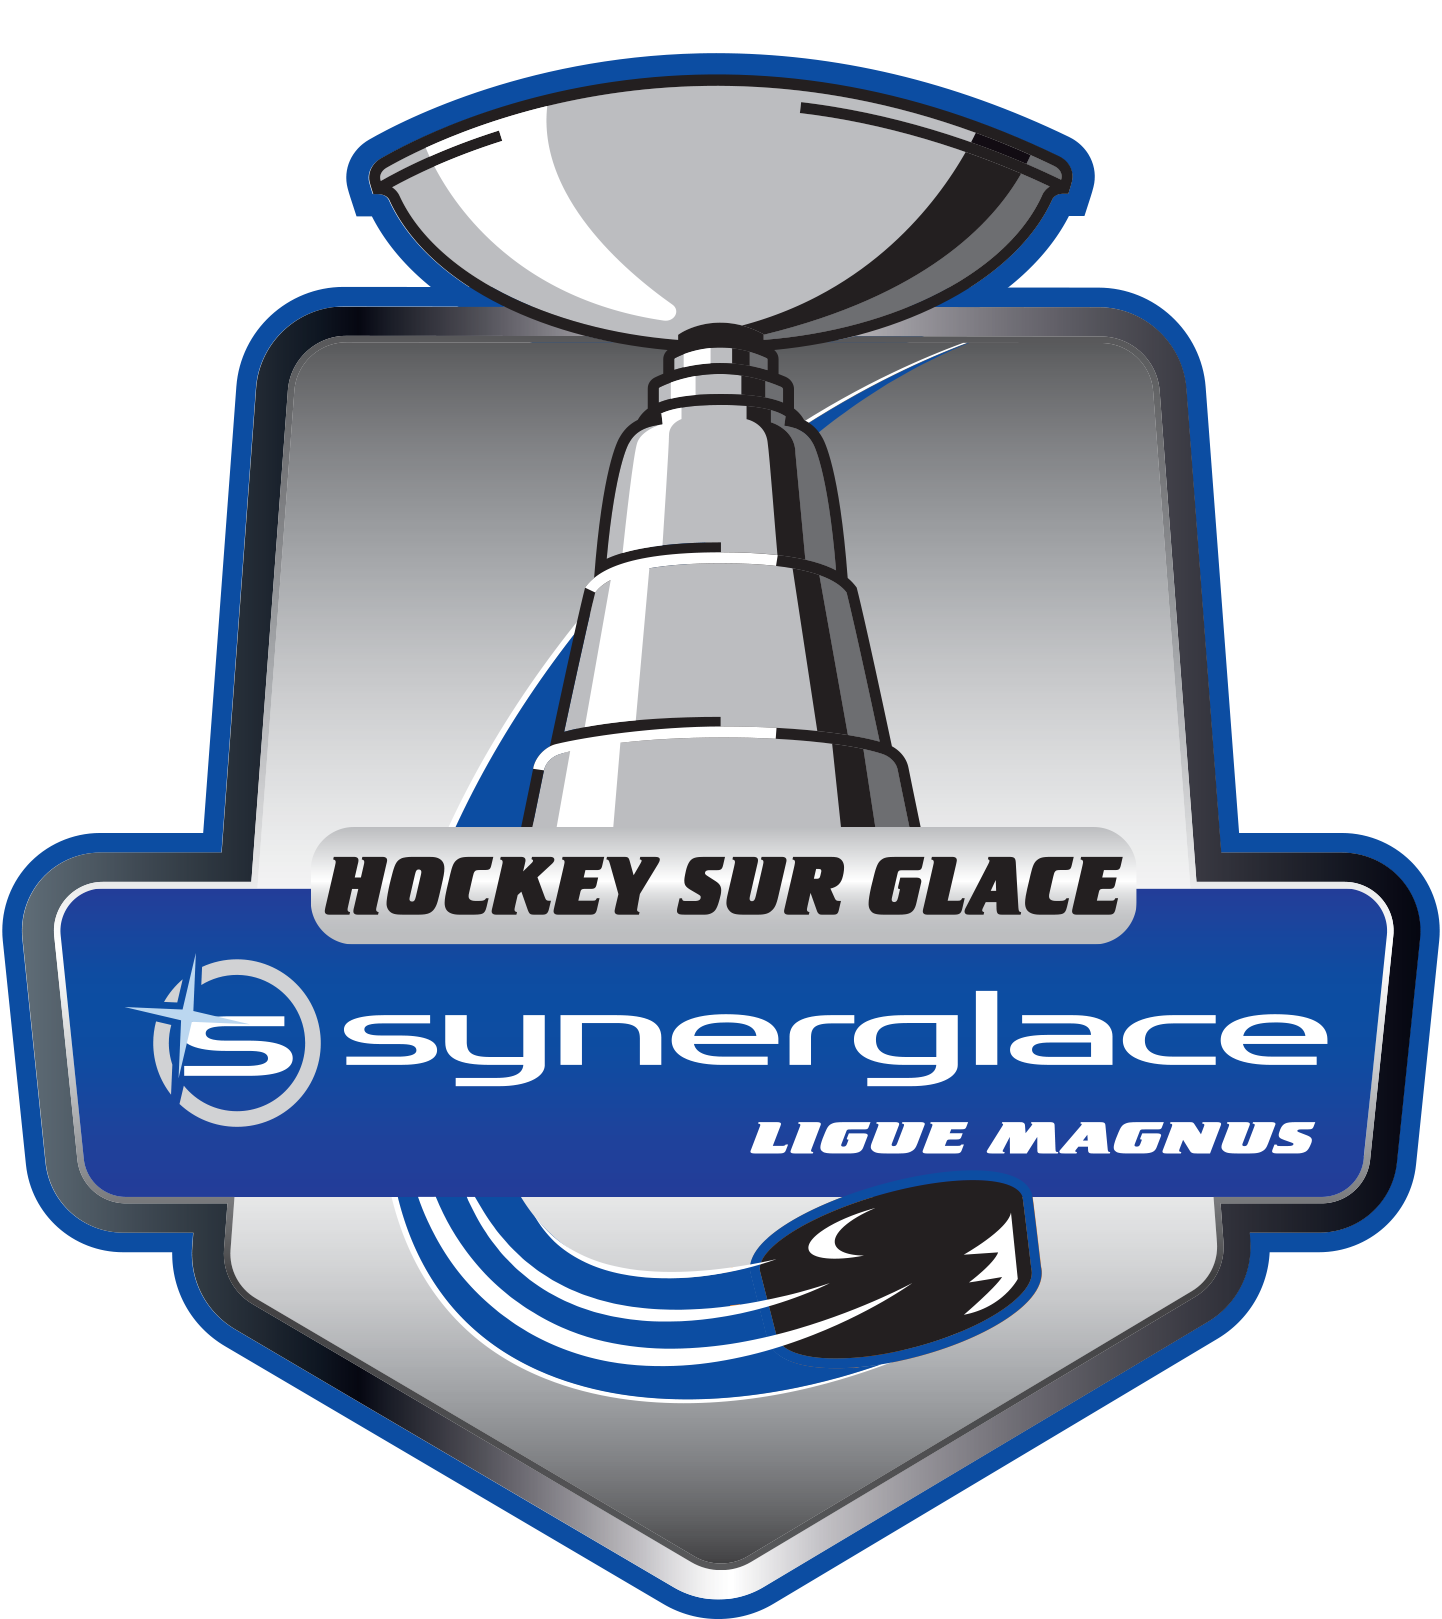 Synerglace Ligue Magnus